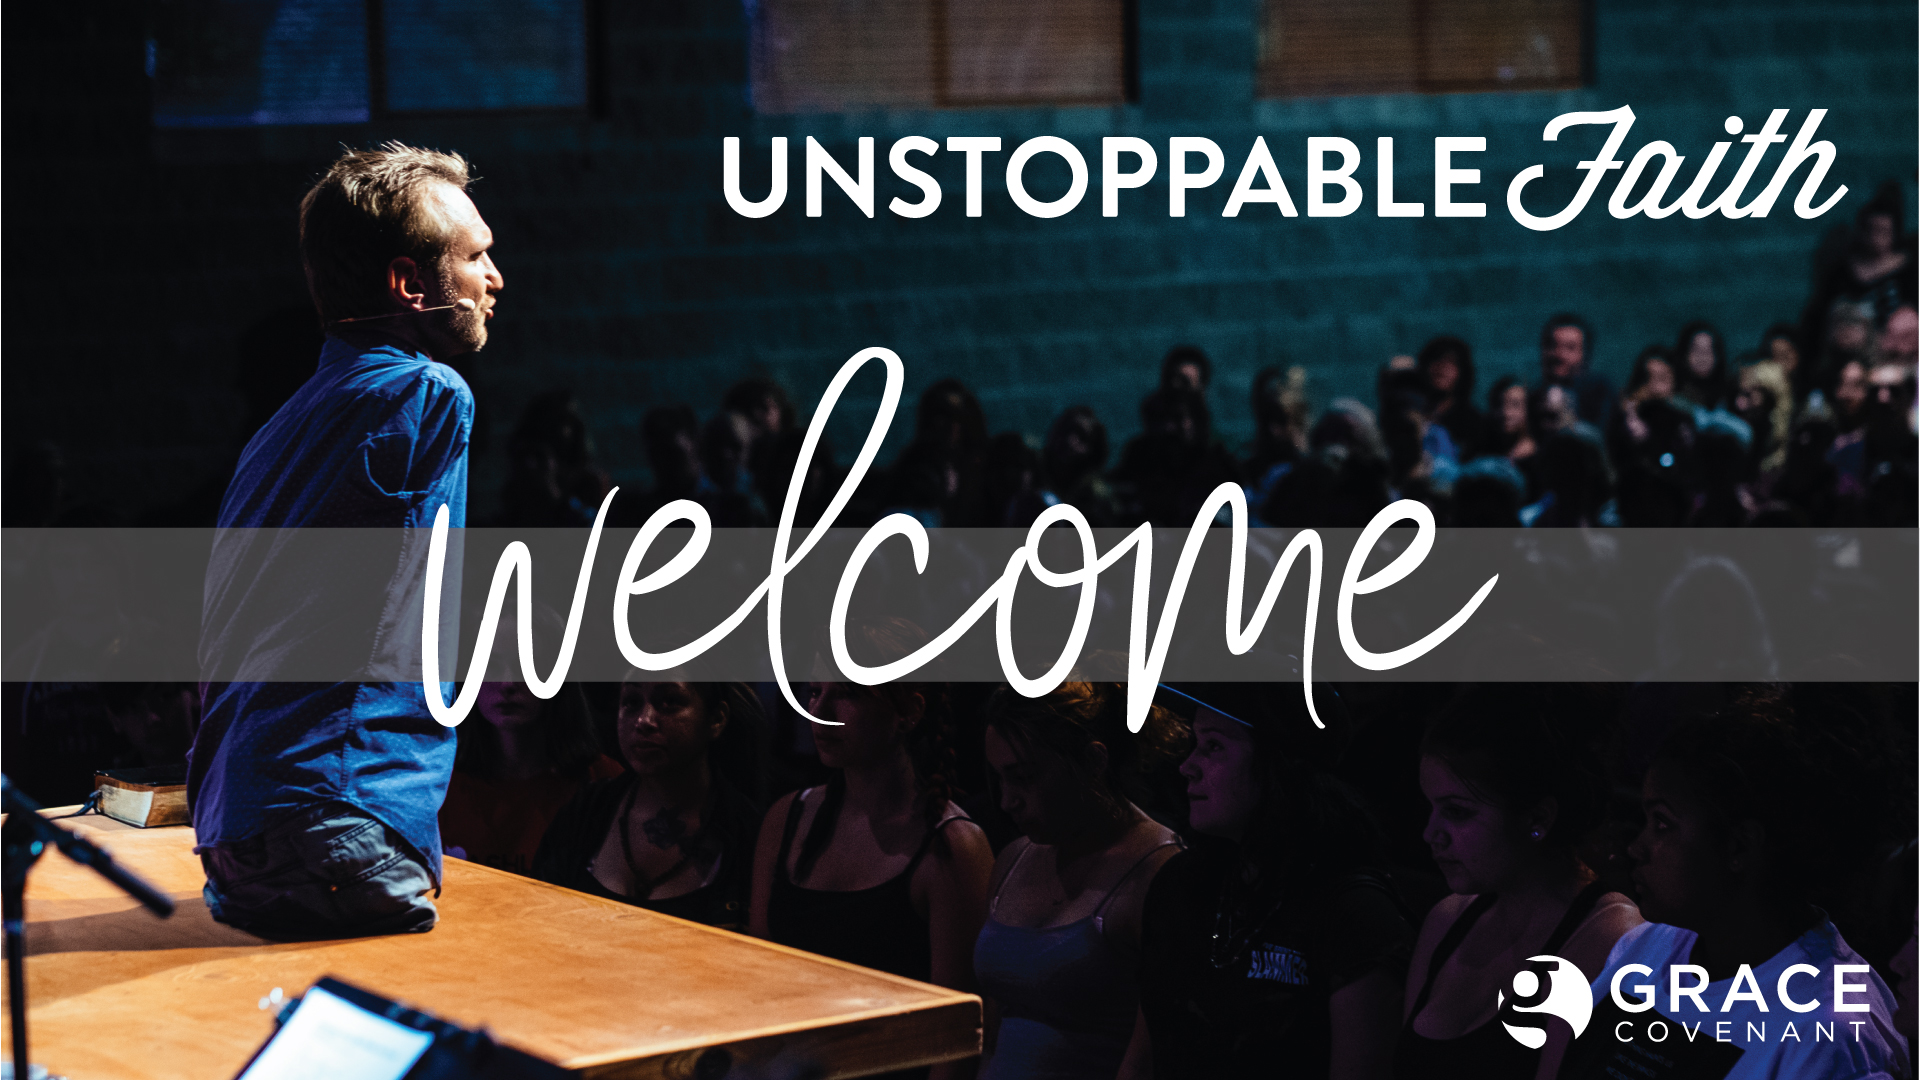 Unstoppable-Faith_Welcome_title.jpg